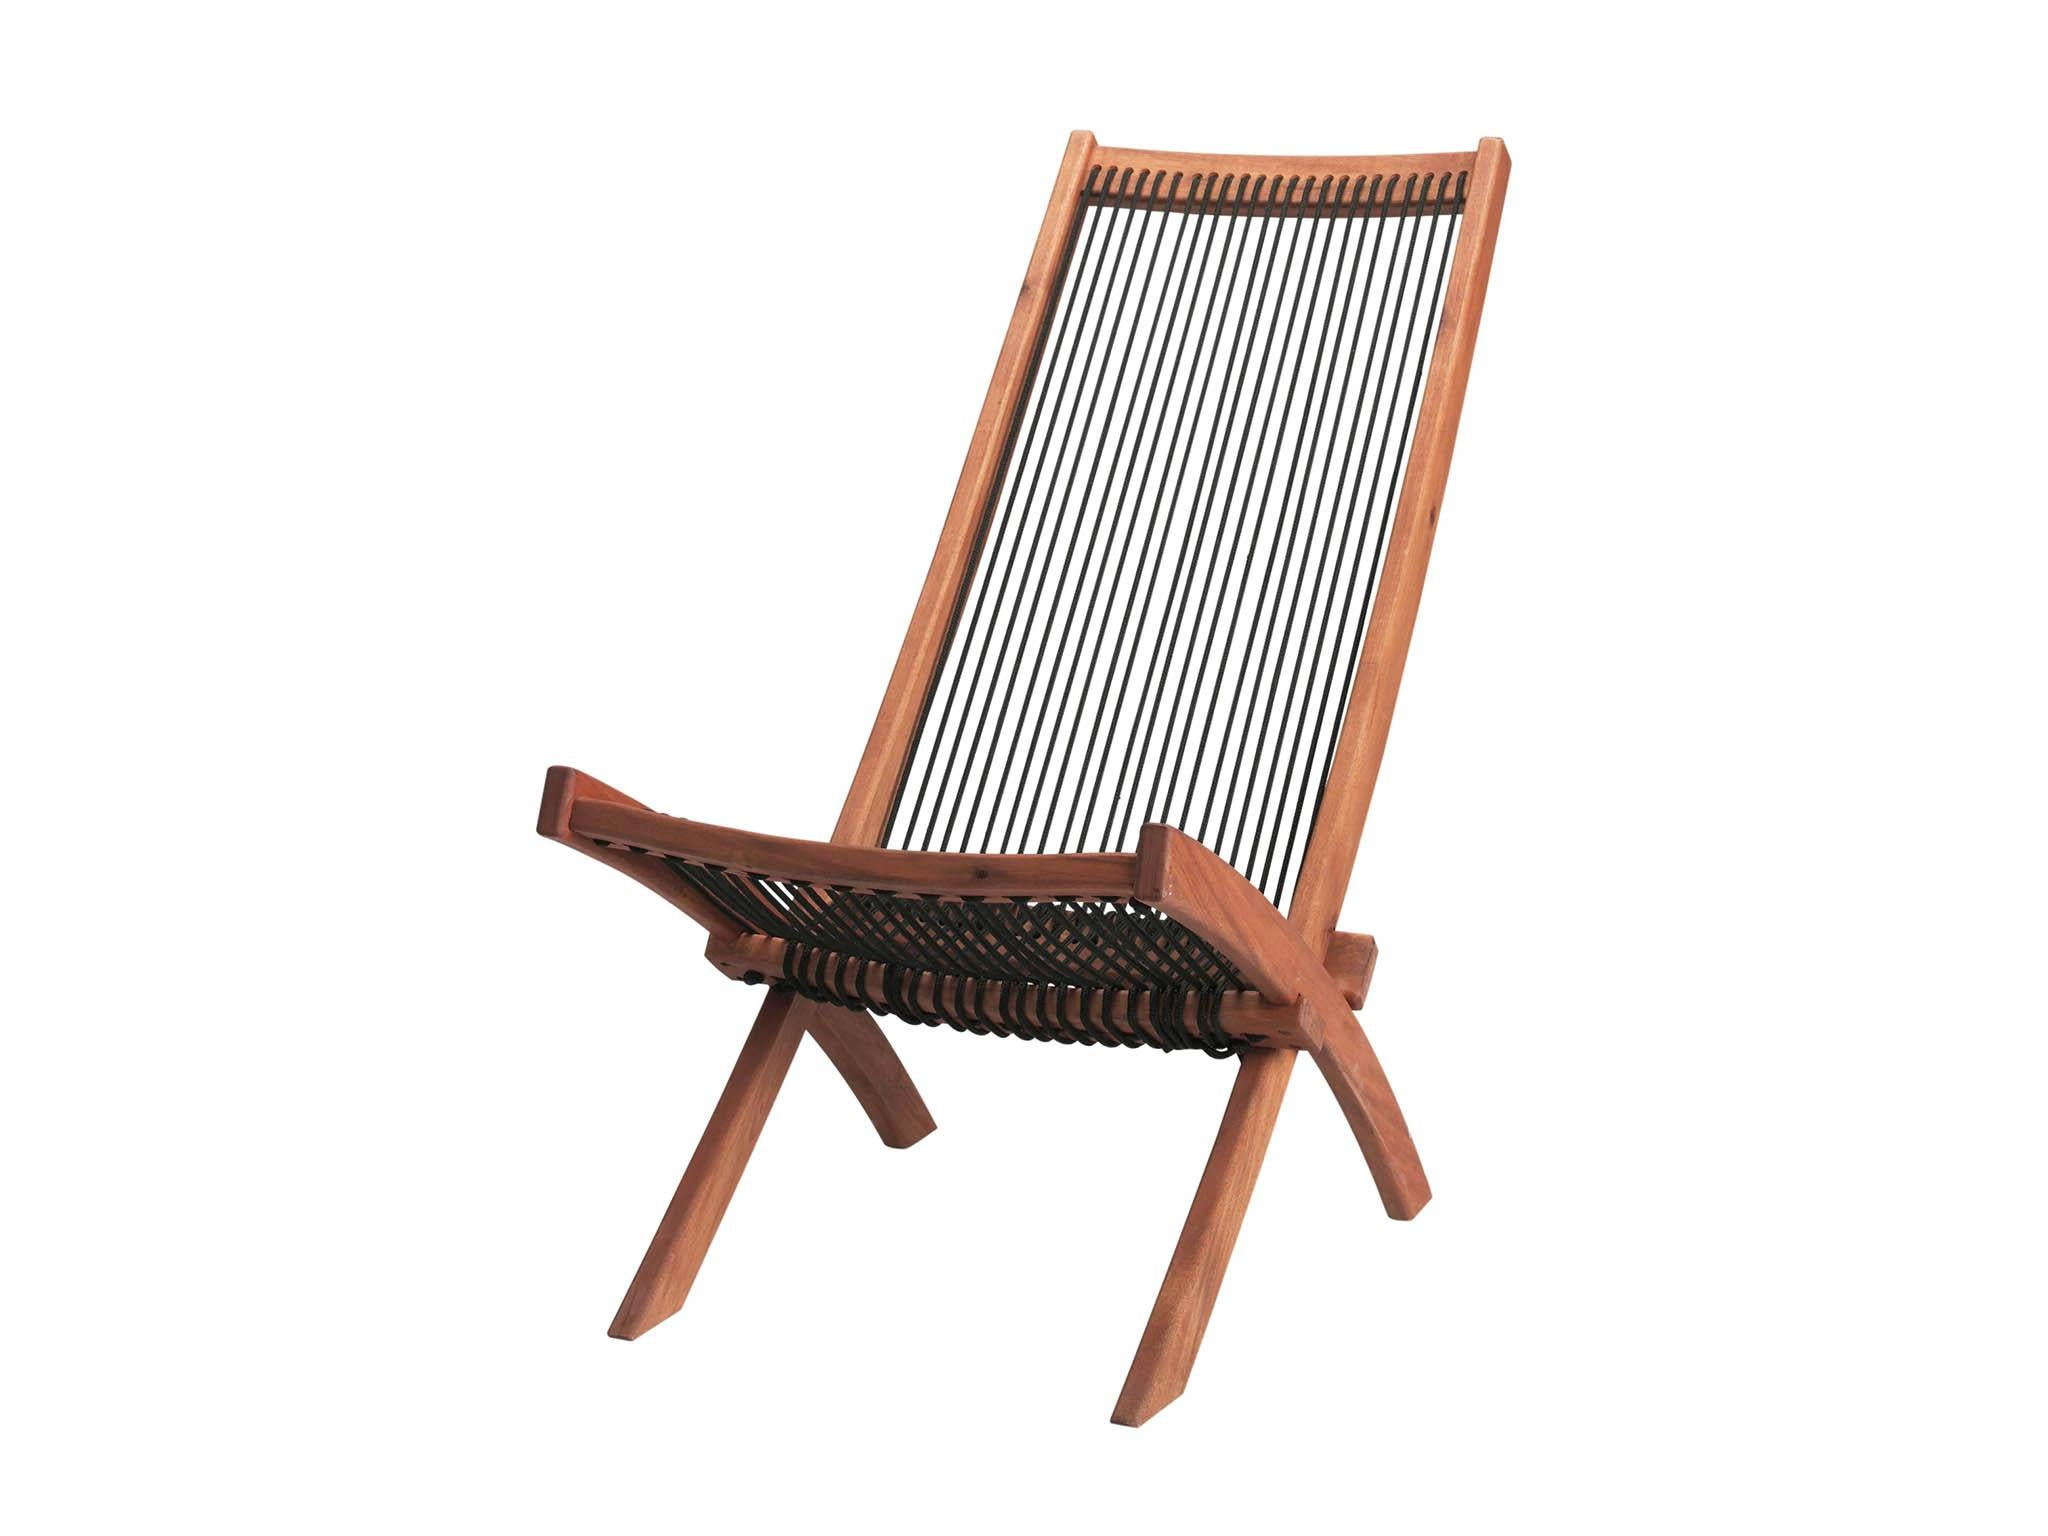 sc 1 st  The Independent & 10 best deck chairs | The Independent